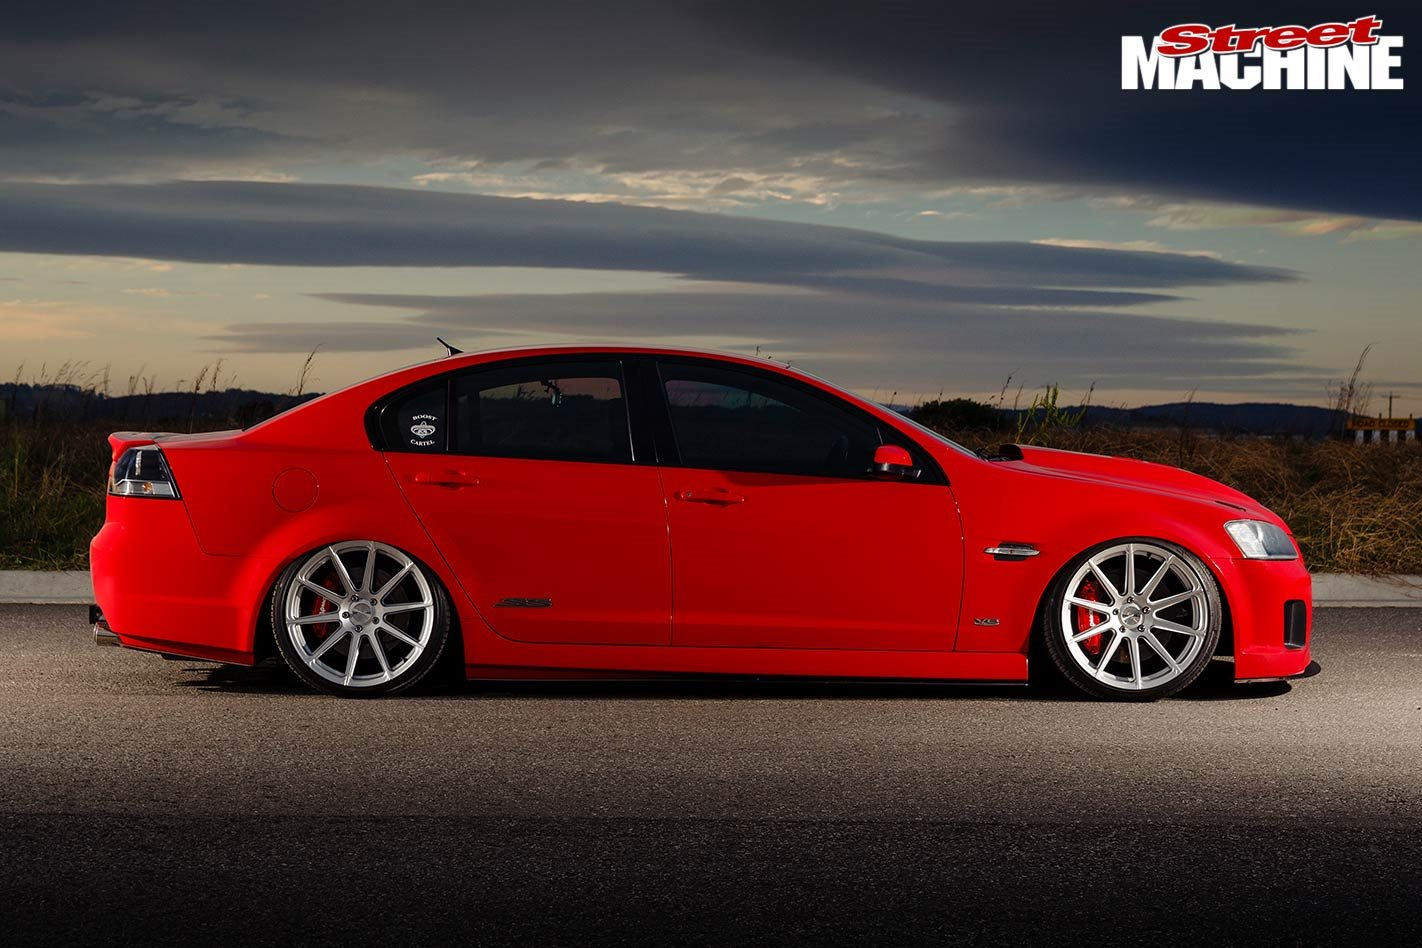 Twin-turbo Holden VE SS-V Commodore